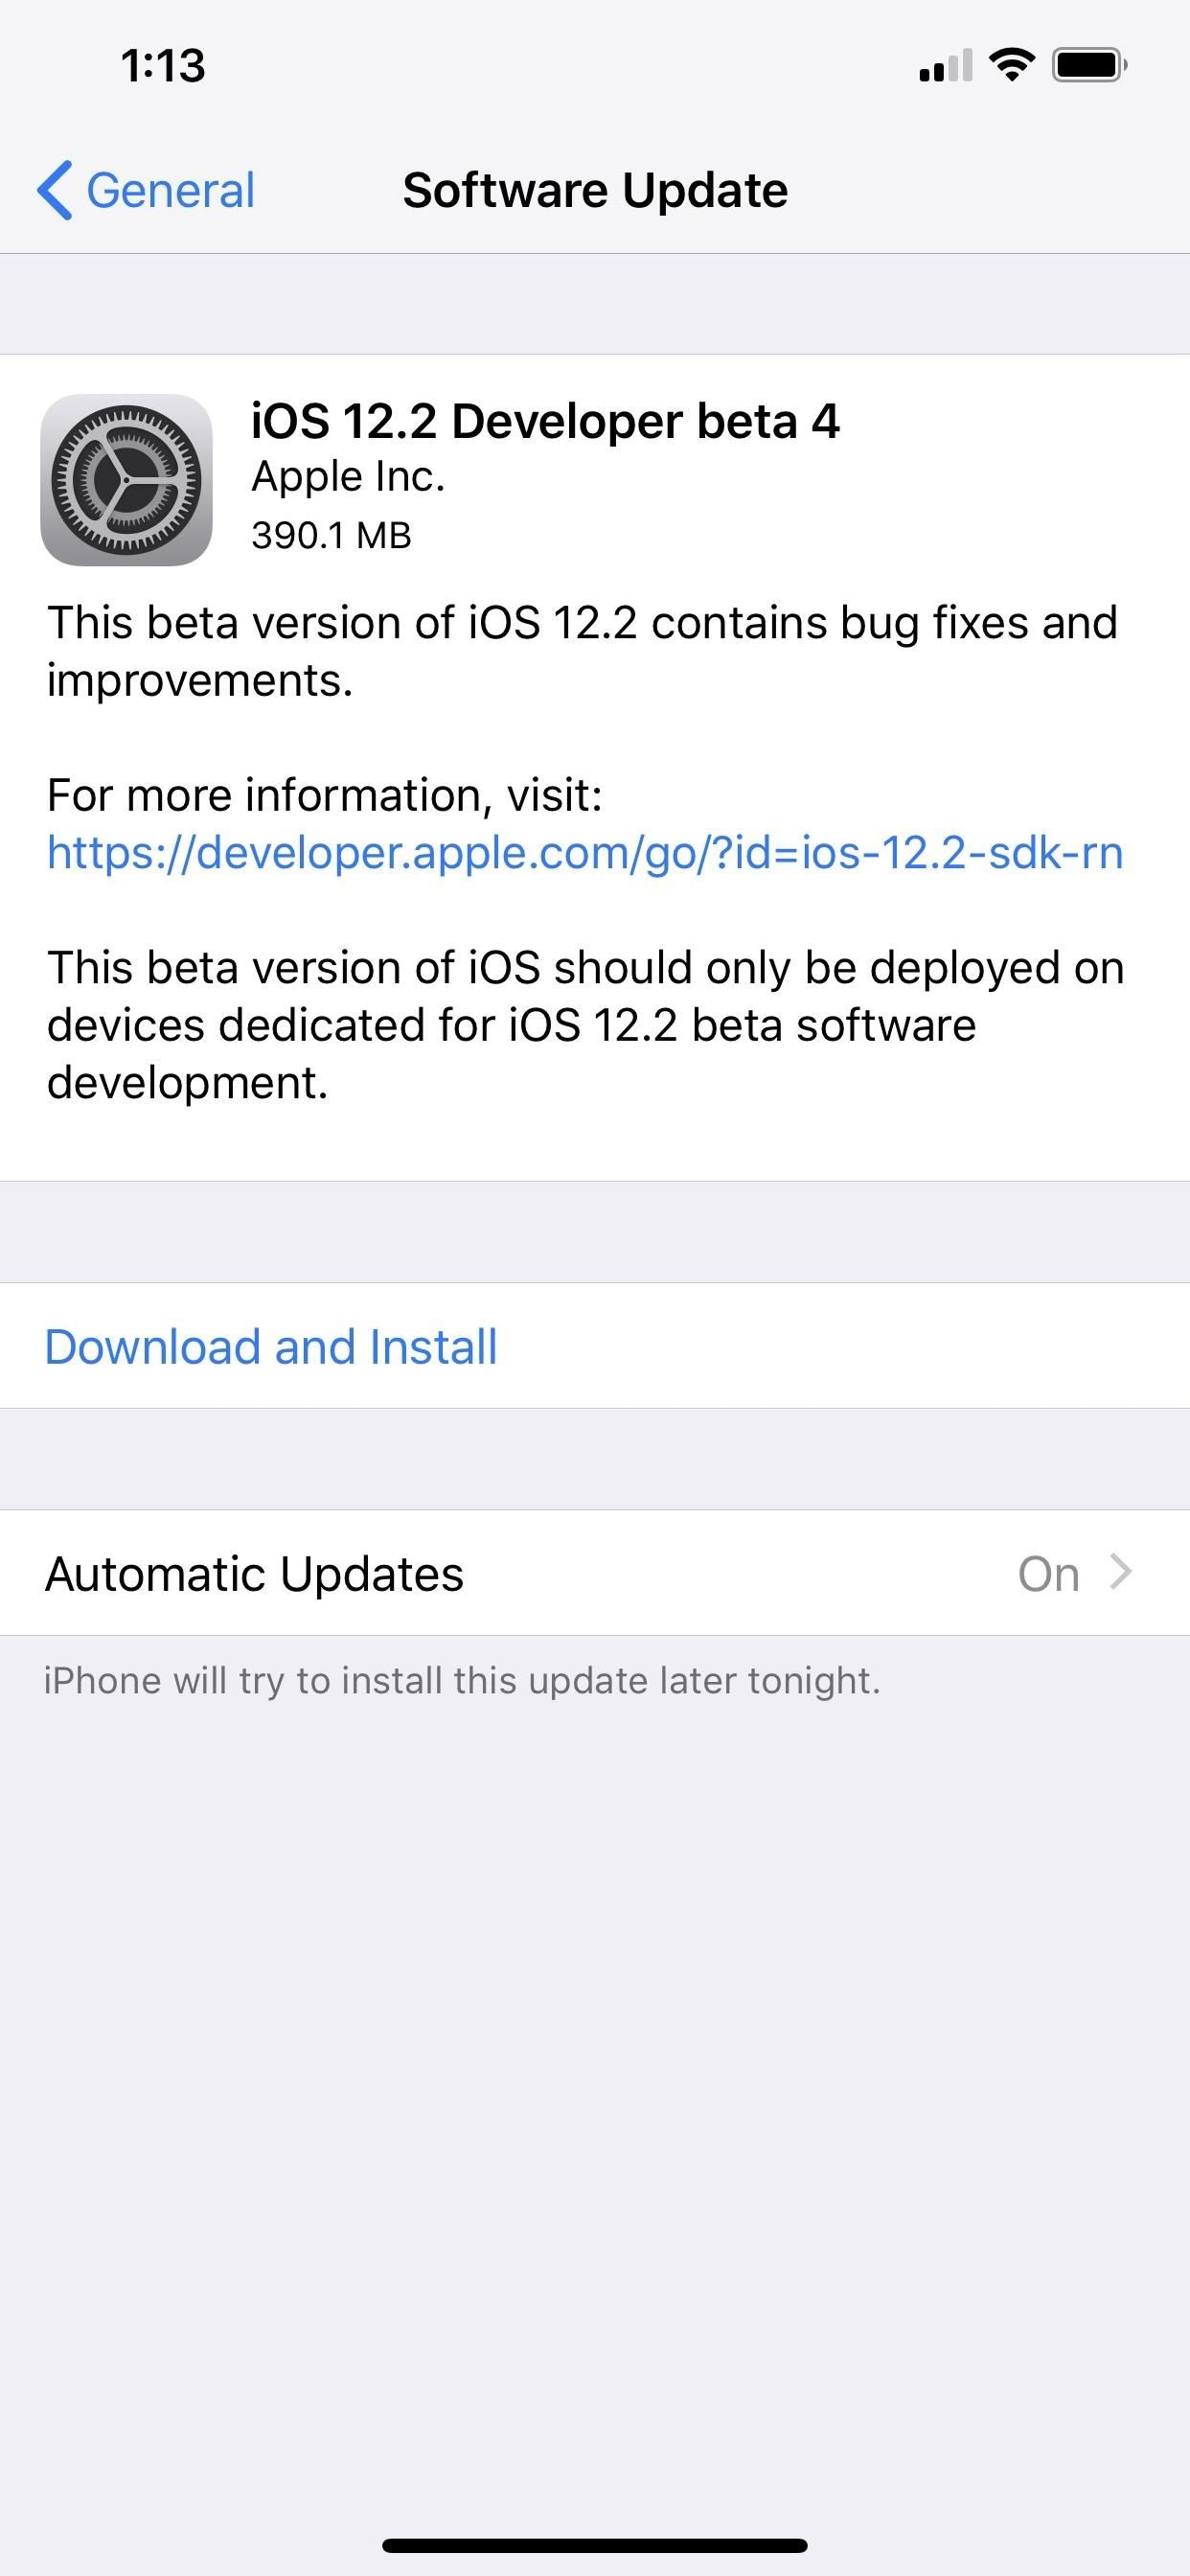 Apple Just Released iOS 12.2 Developer Beta 4 for iPhone, Includes New Icons, Updated About Page & More